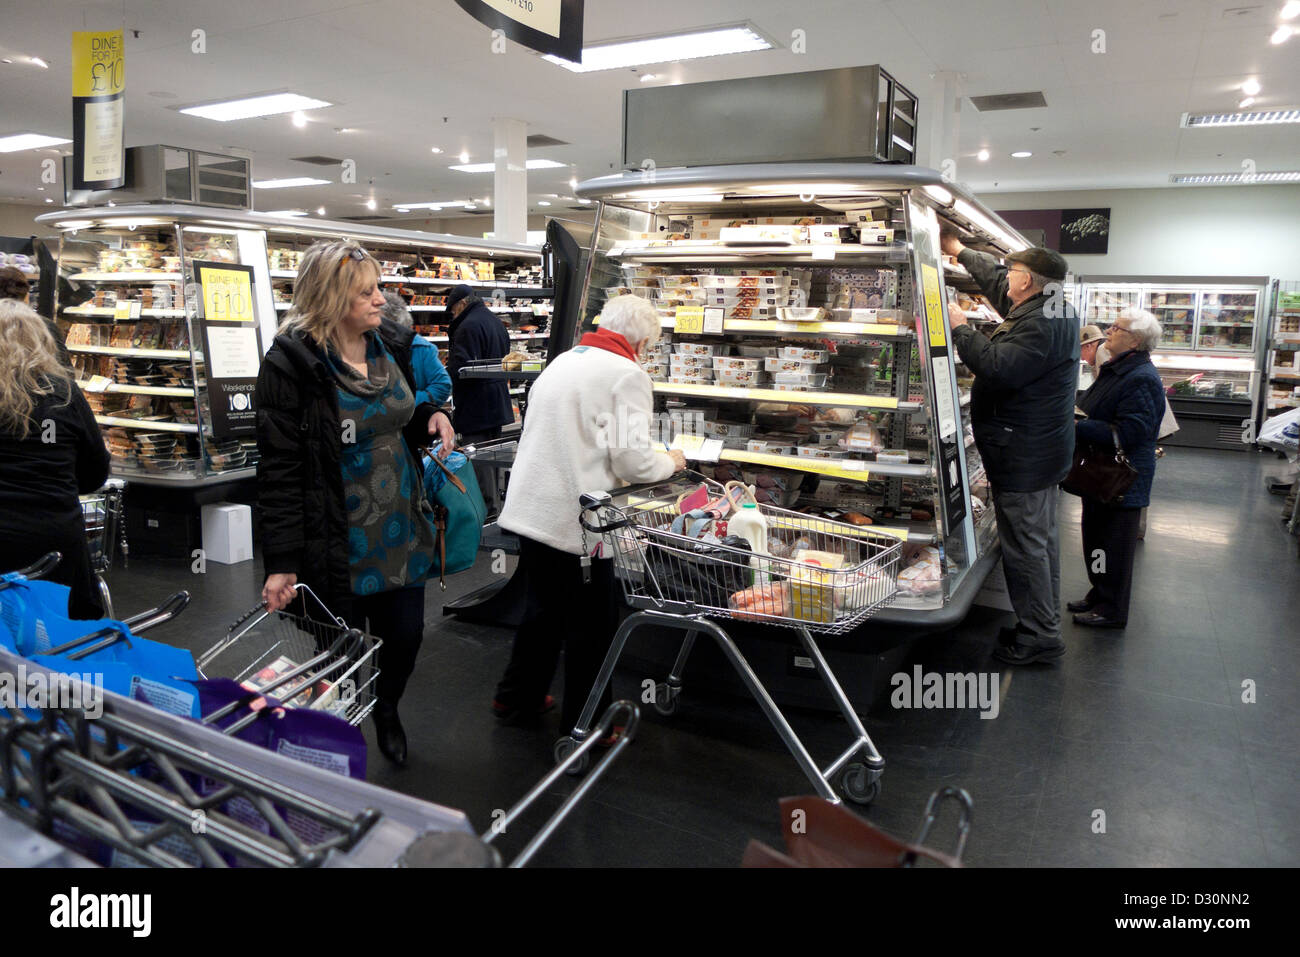 Customers with shopping basket and trolley looking at chilled food products on refrigeration aisle inside Marks - Stock Image